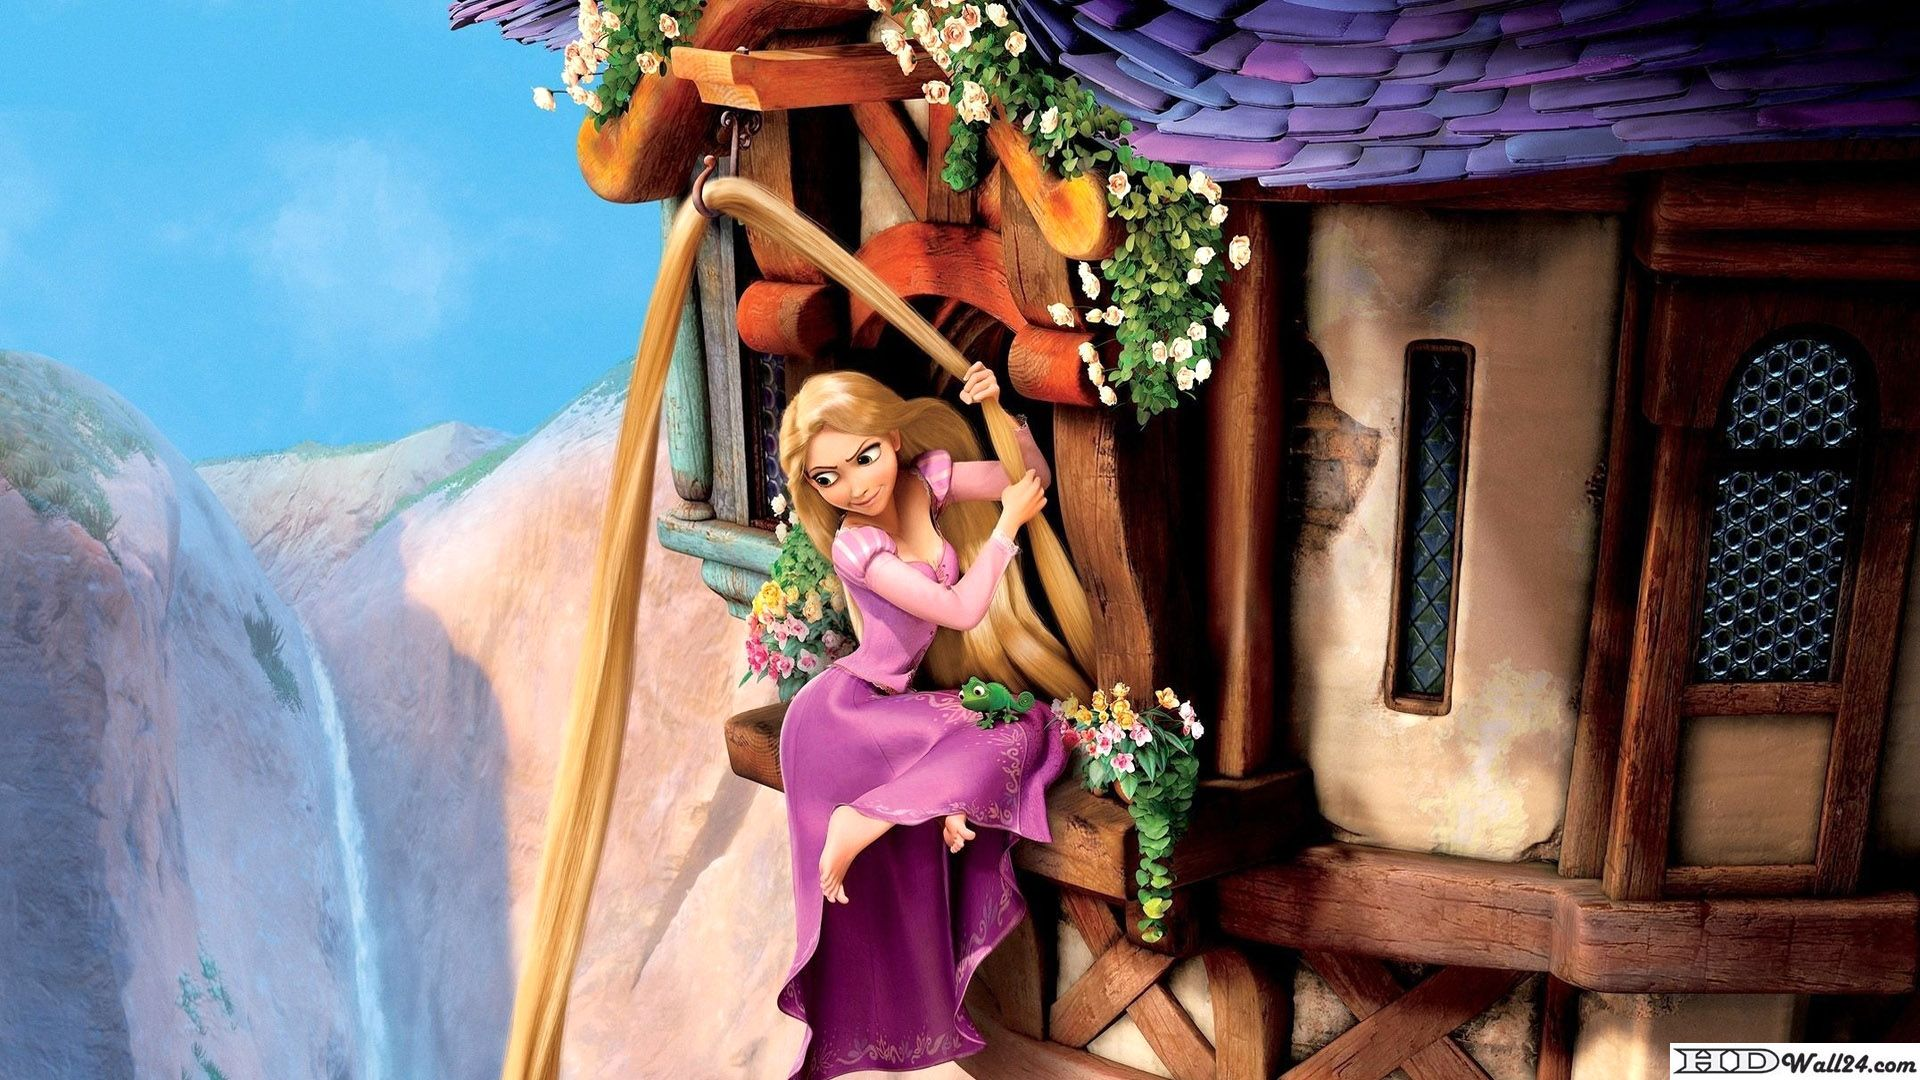 Princess Tangled Hd Wallpaper From Free Hd Wallpapers Download From Hdwall24 Various Kinds Of Wallpapers Fair Free Tangled Wallpaper Tangled Movie Rapunzel